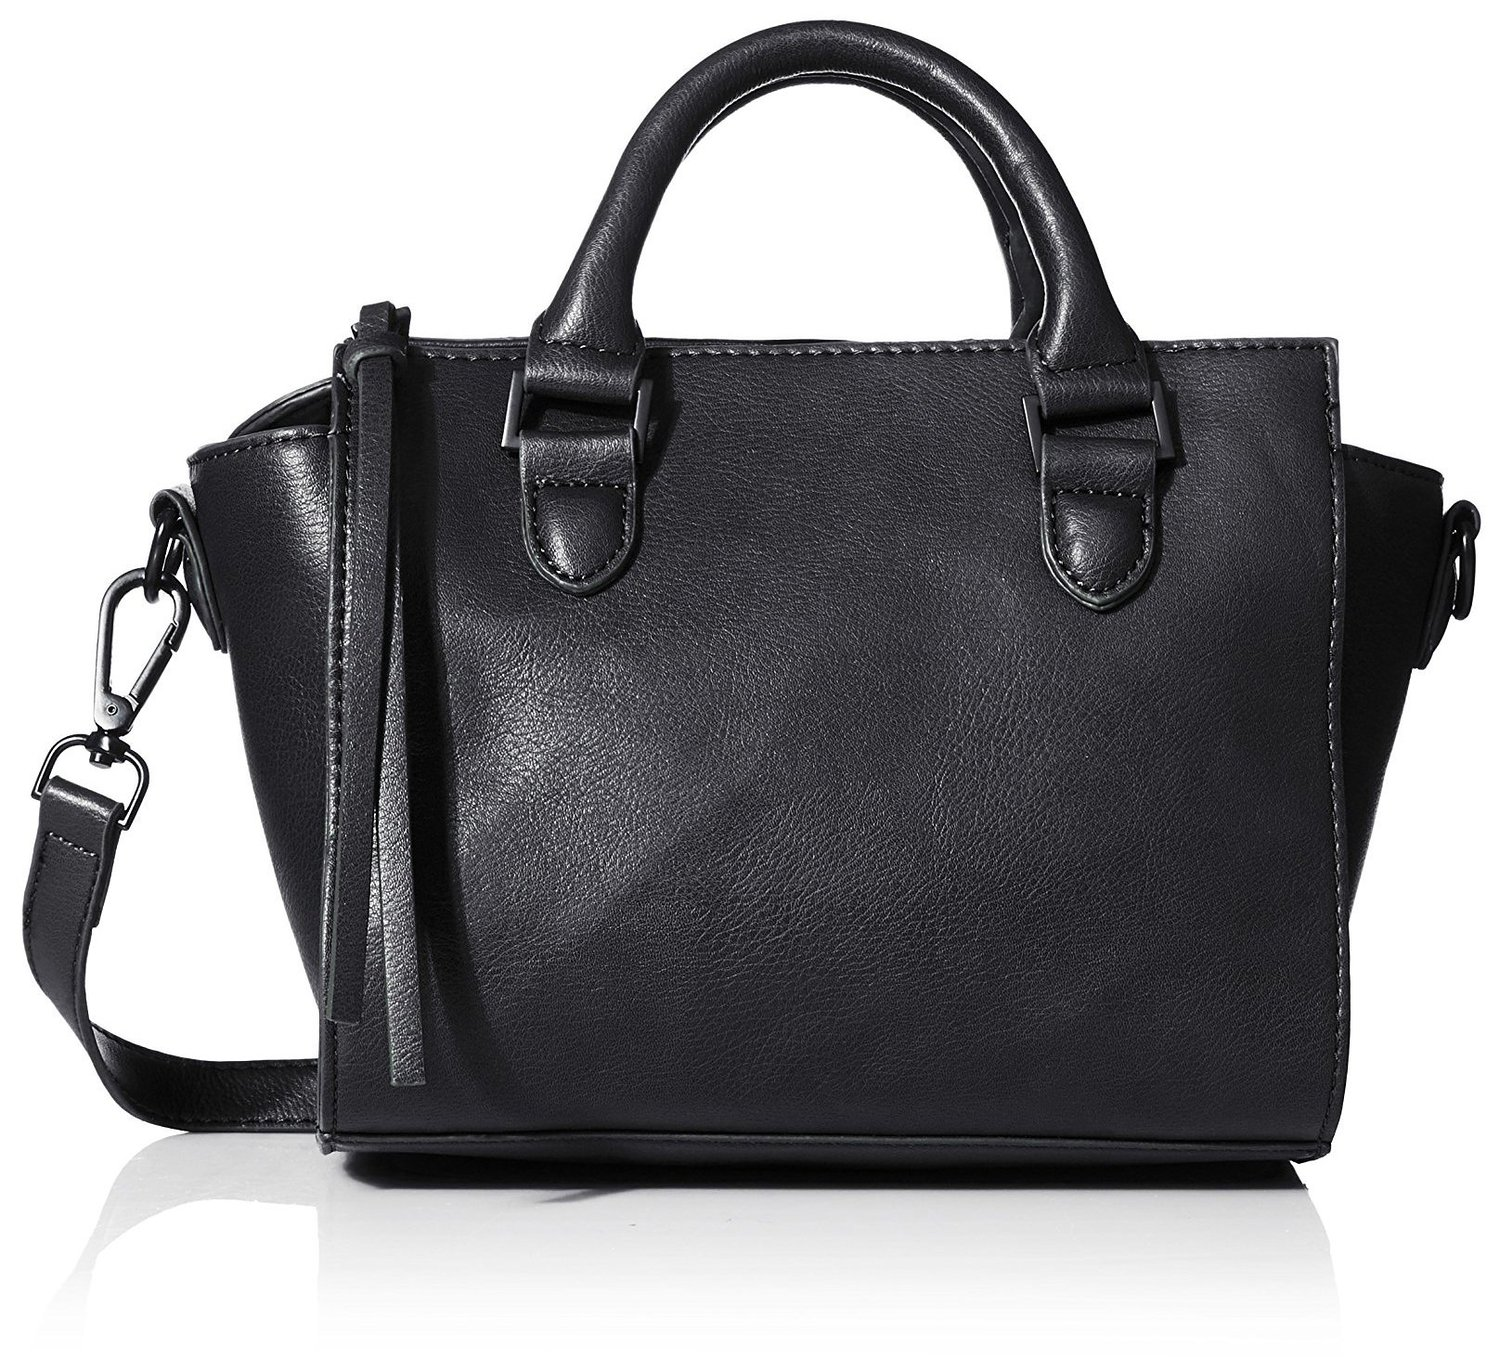 162e9fdebf4 Steven Madden Women's Willa Mini Bag, Black: Handbags: Amazon.com